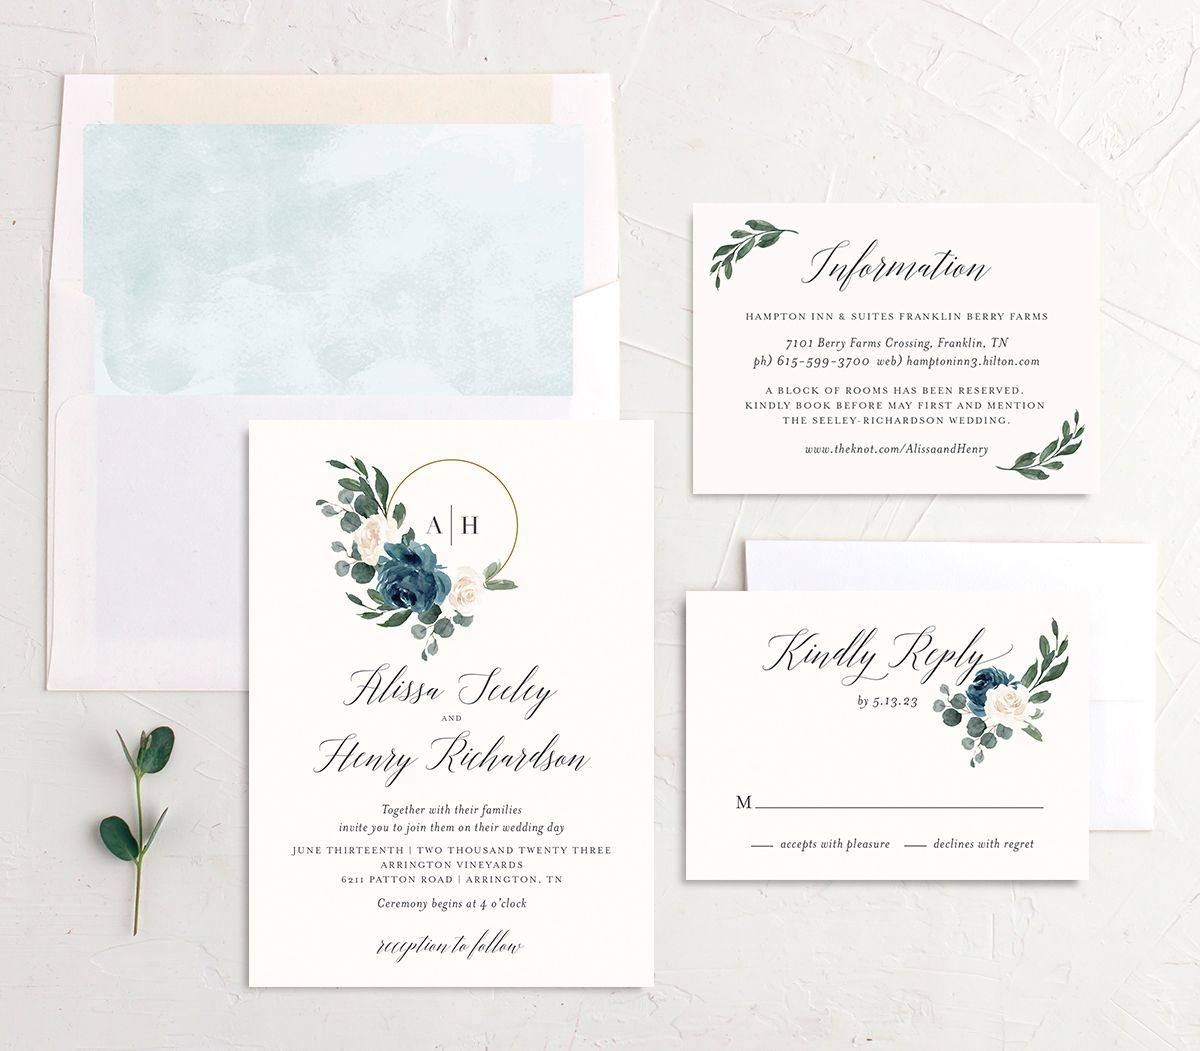 Floral Hoop Wedding Invitation suite in teal